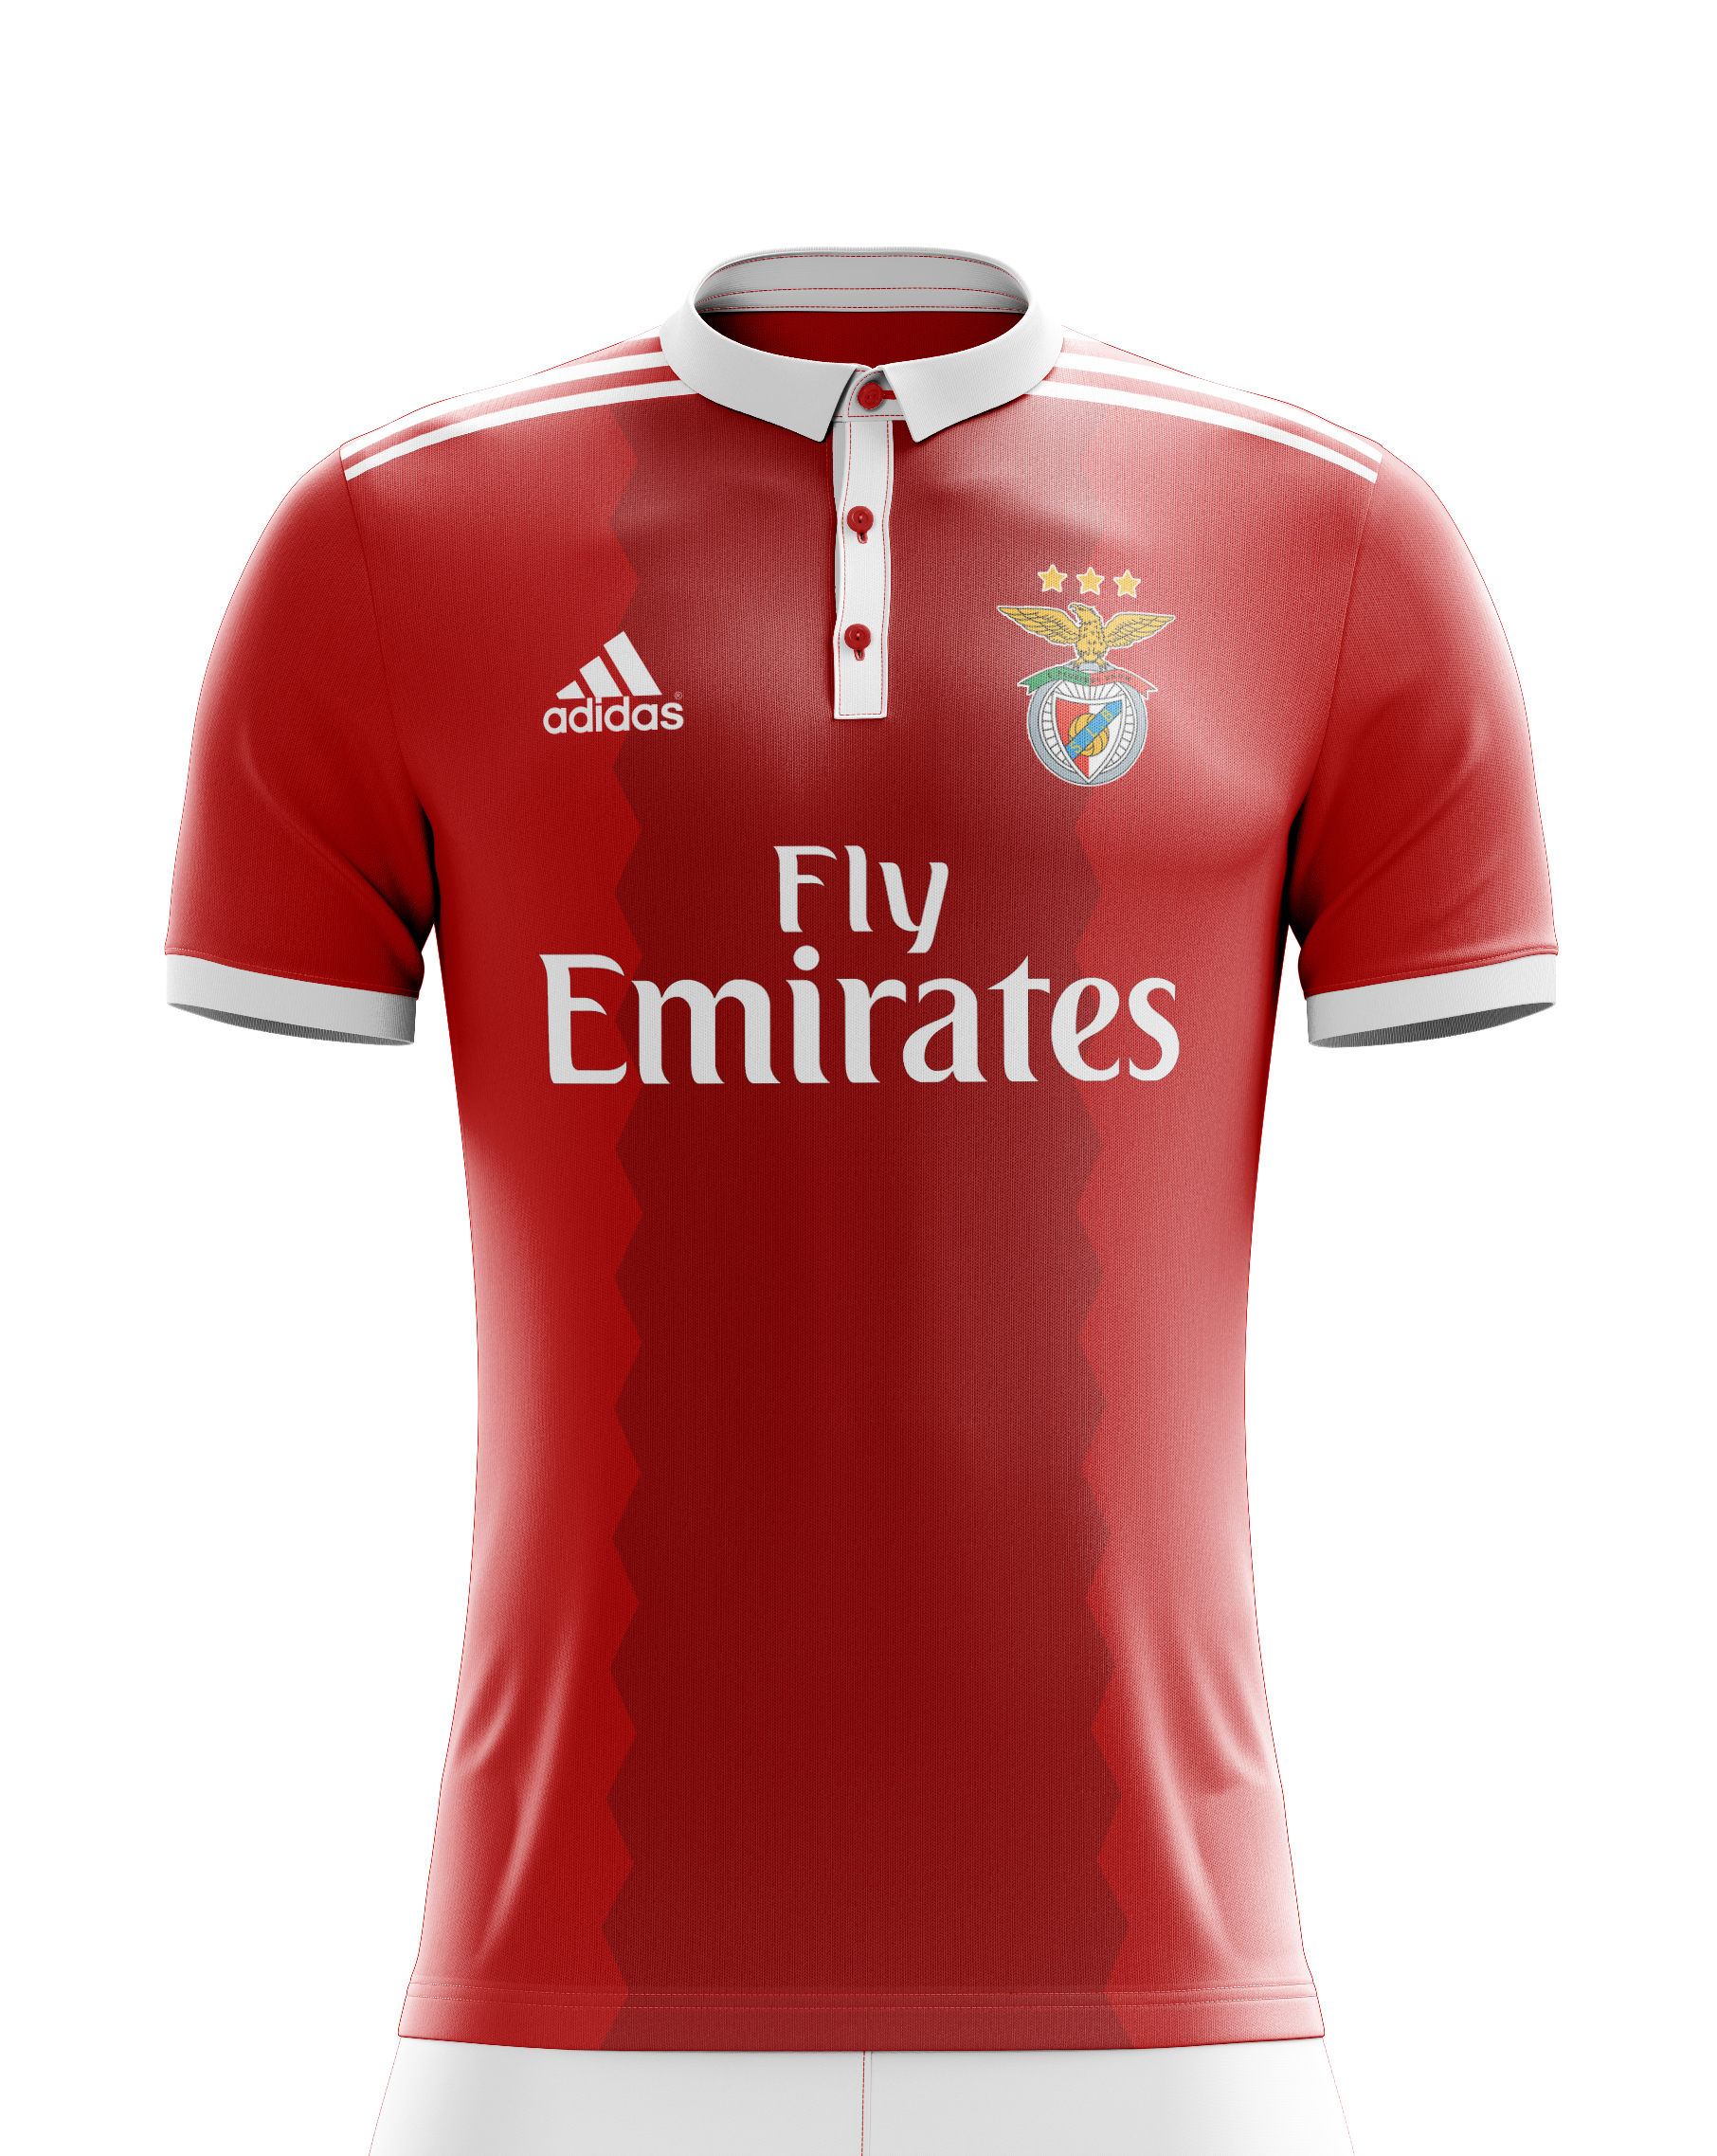 1451e4598 Yükle (1812x2275)5 fashionable football tops that can be worn outside the  grounds - Fashion Norththe Benfica FC home kit is more polo based with the  collar ...